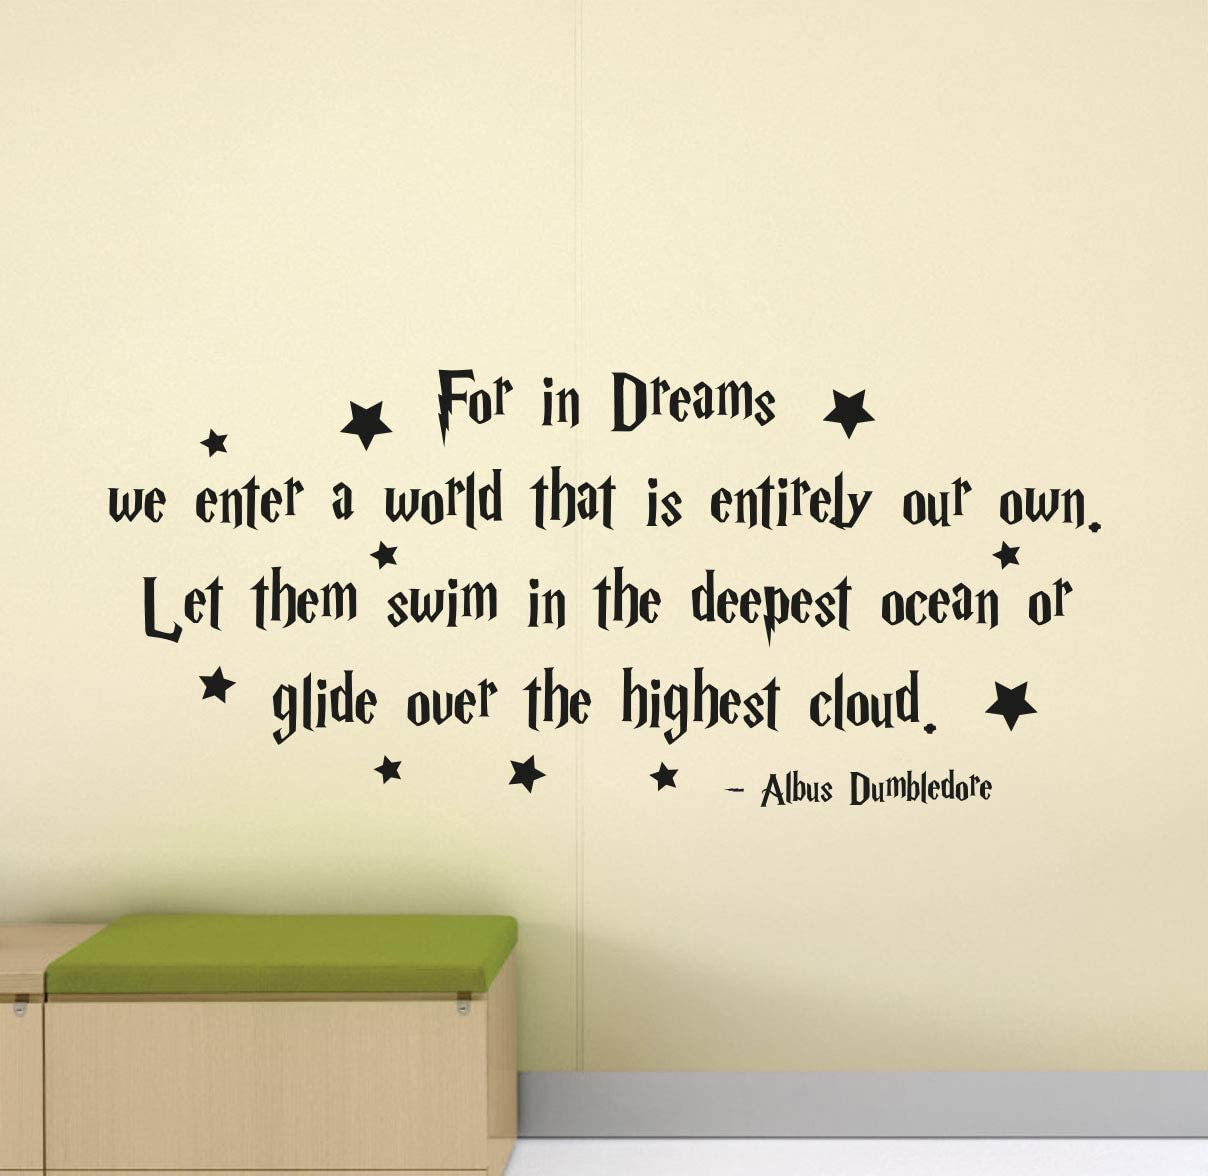 for in Dreams We Enter a World That is Entirely Our Own Wall Decal Quote Vinyl Poster Home Bedroom Wall Art Nursery Wall Decor Sticker Home Inspirational Quotes Mural Removable Print 1098